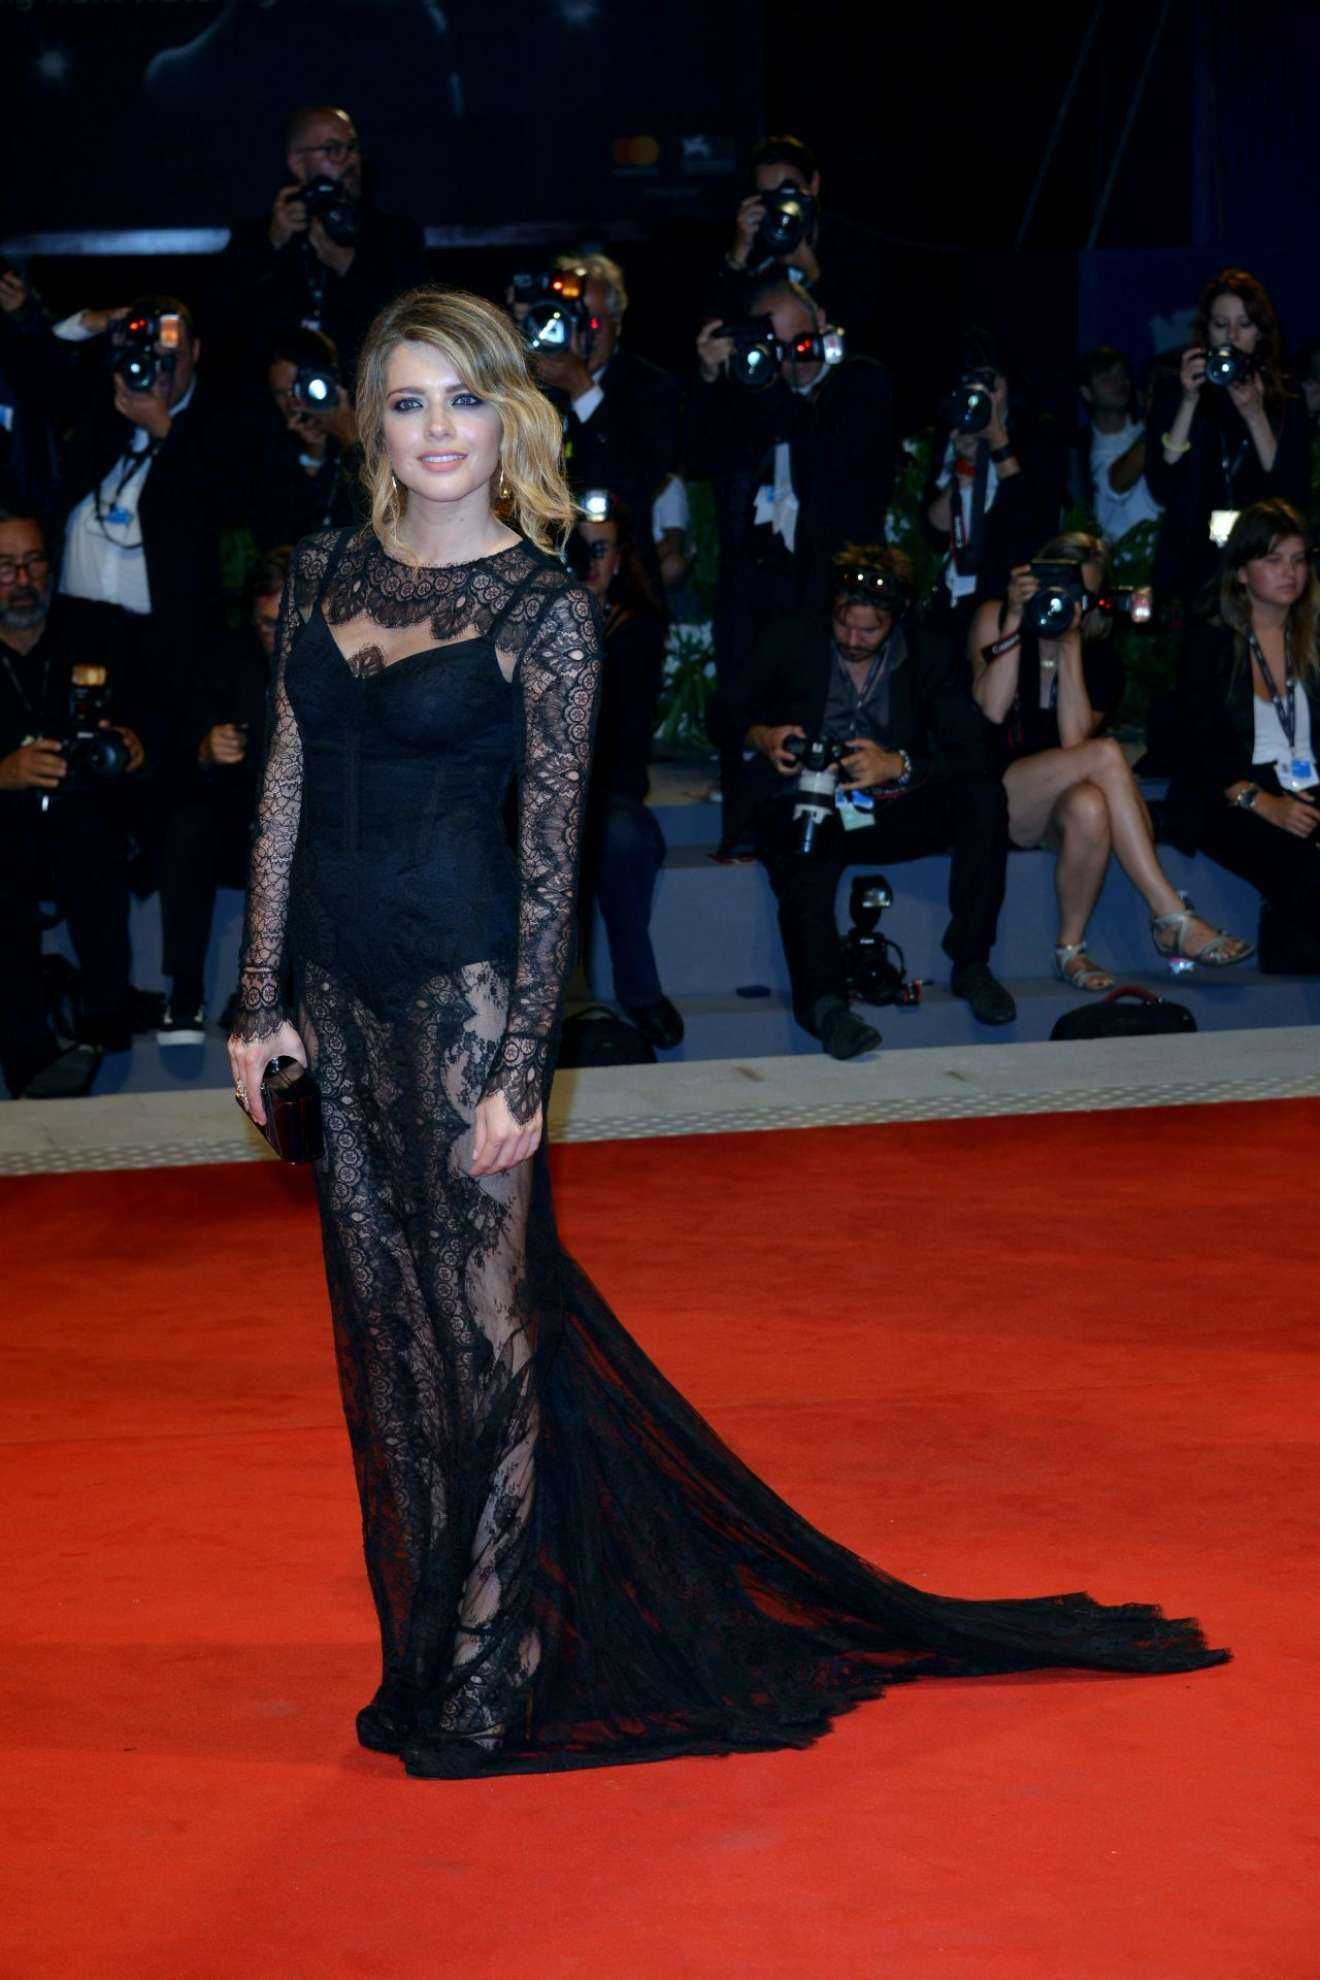 Alexandra dinu loving pablo premiere at the venice film festival naked (26 photos), Selfie Celebrites picture